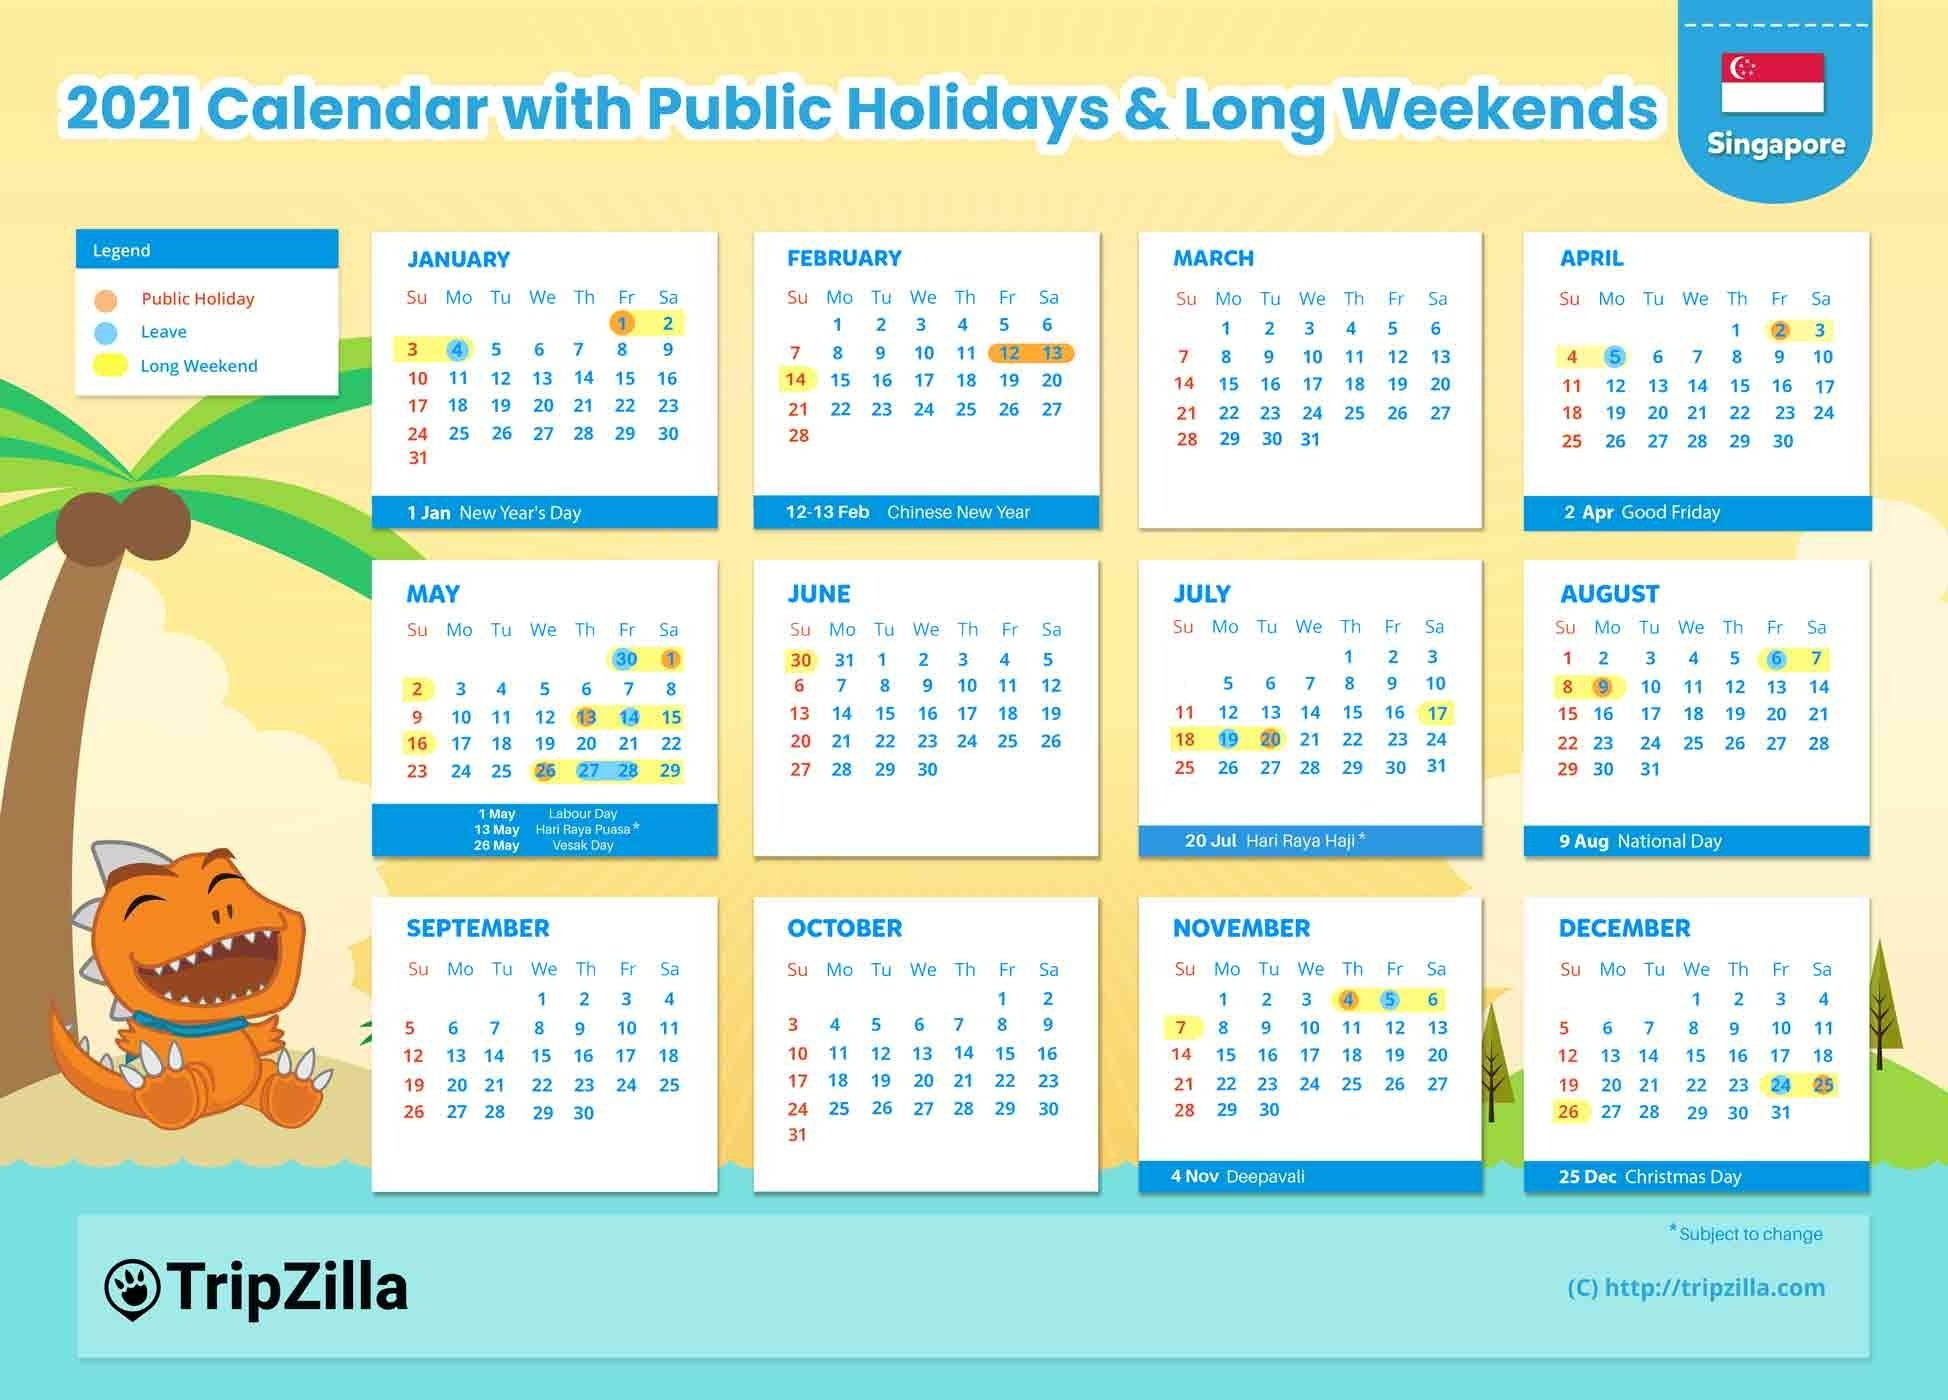 Singapore Calendar 2021 With Public Holidays | Calendar 2021